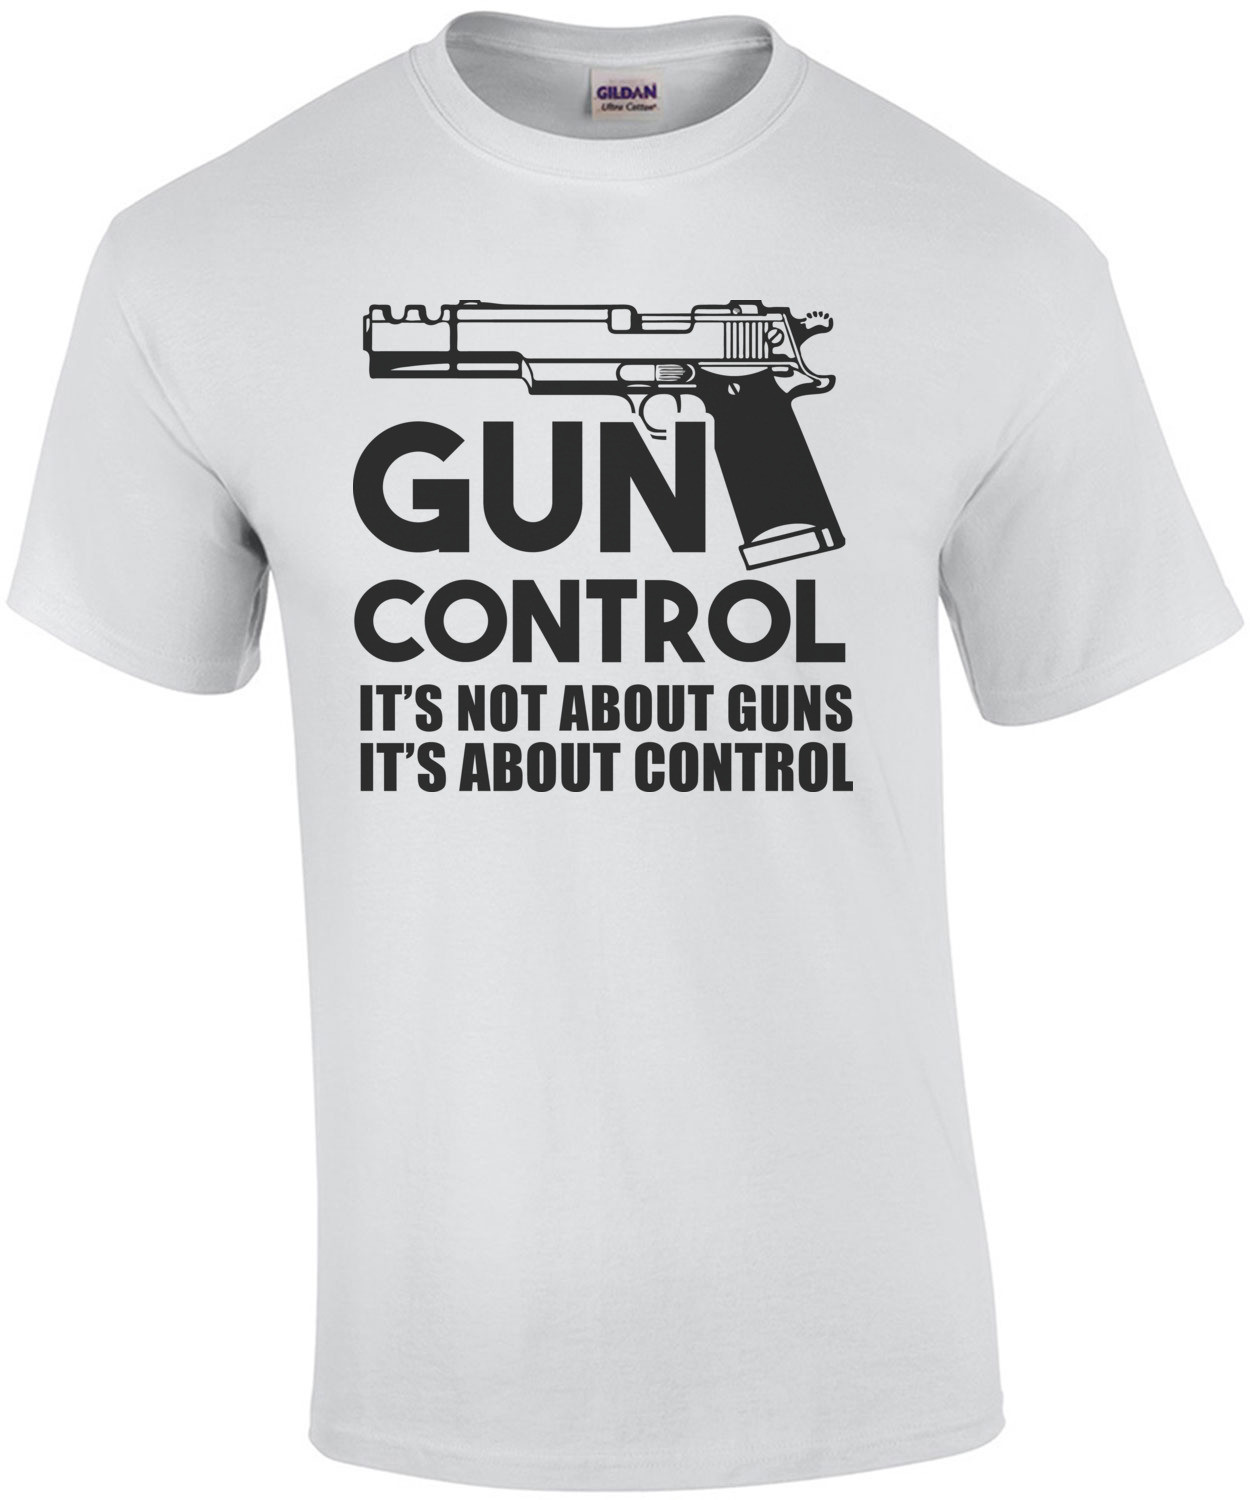 Cover your body with amazing Guns t-shirts from Zazzle. Search for your new favorite shirt from thousands of great designs!